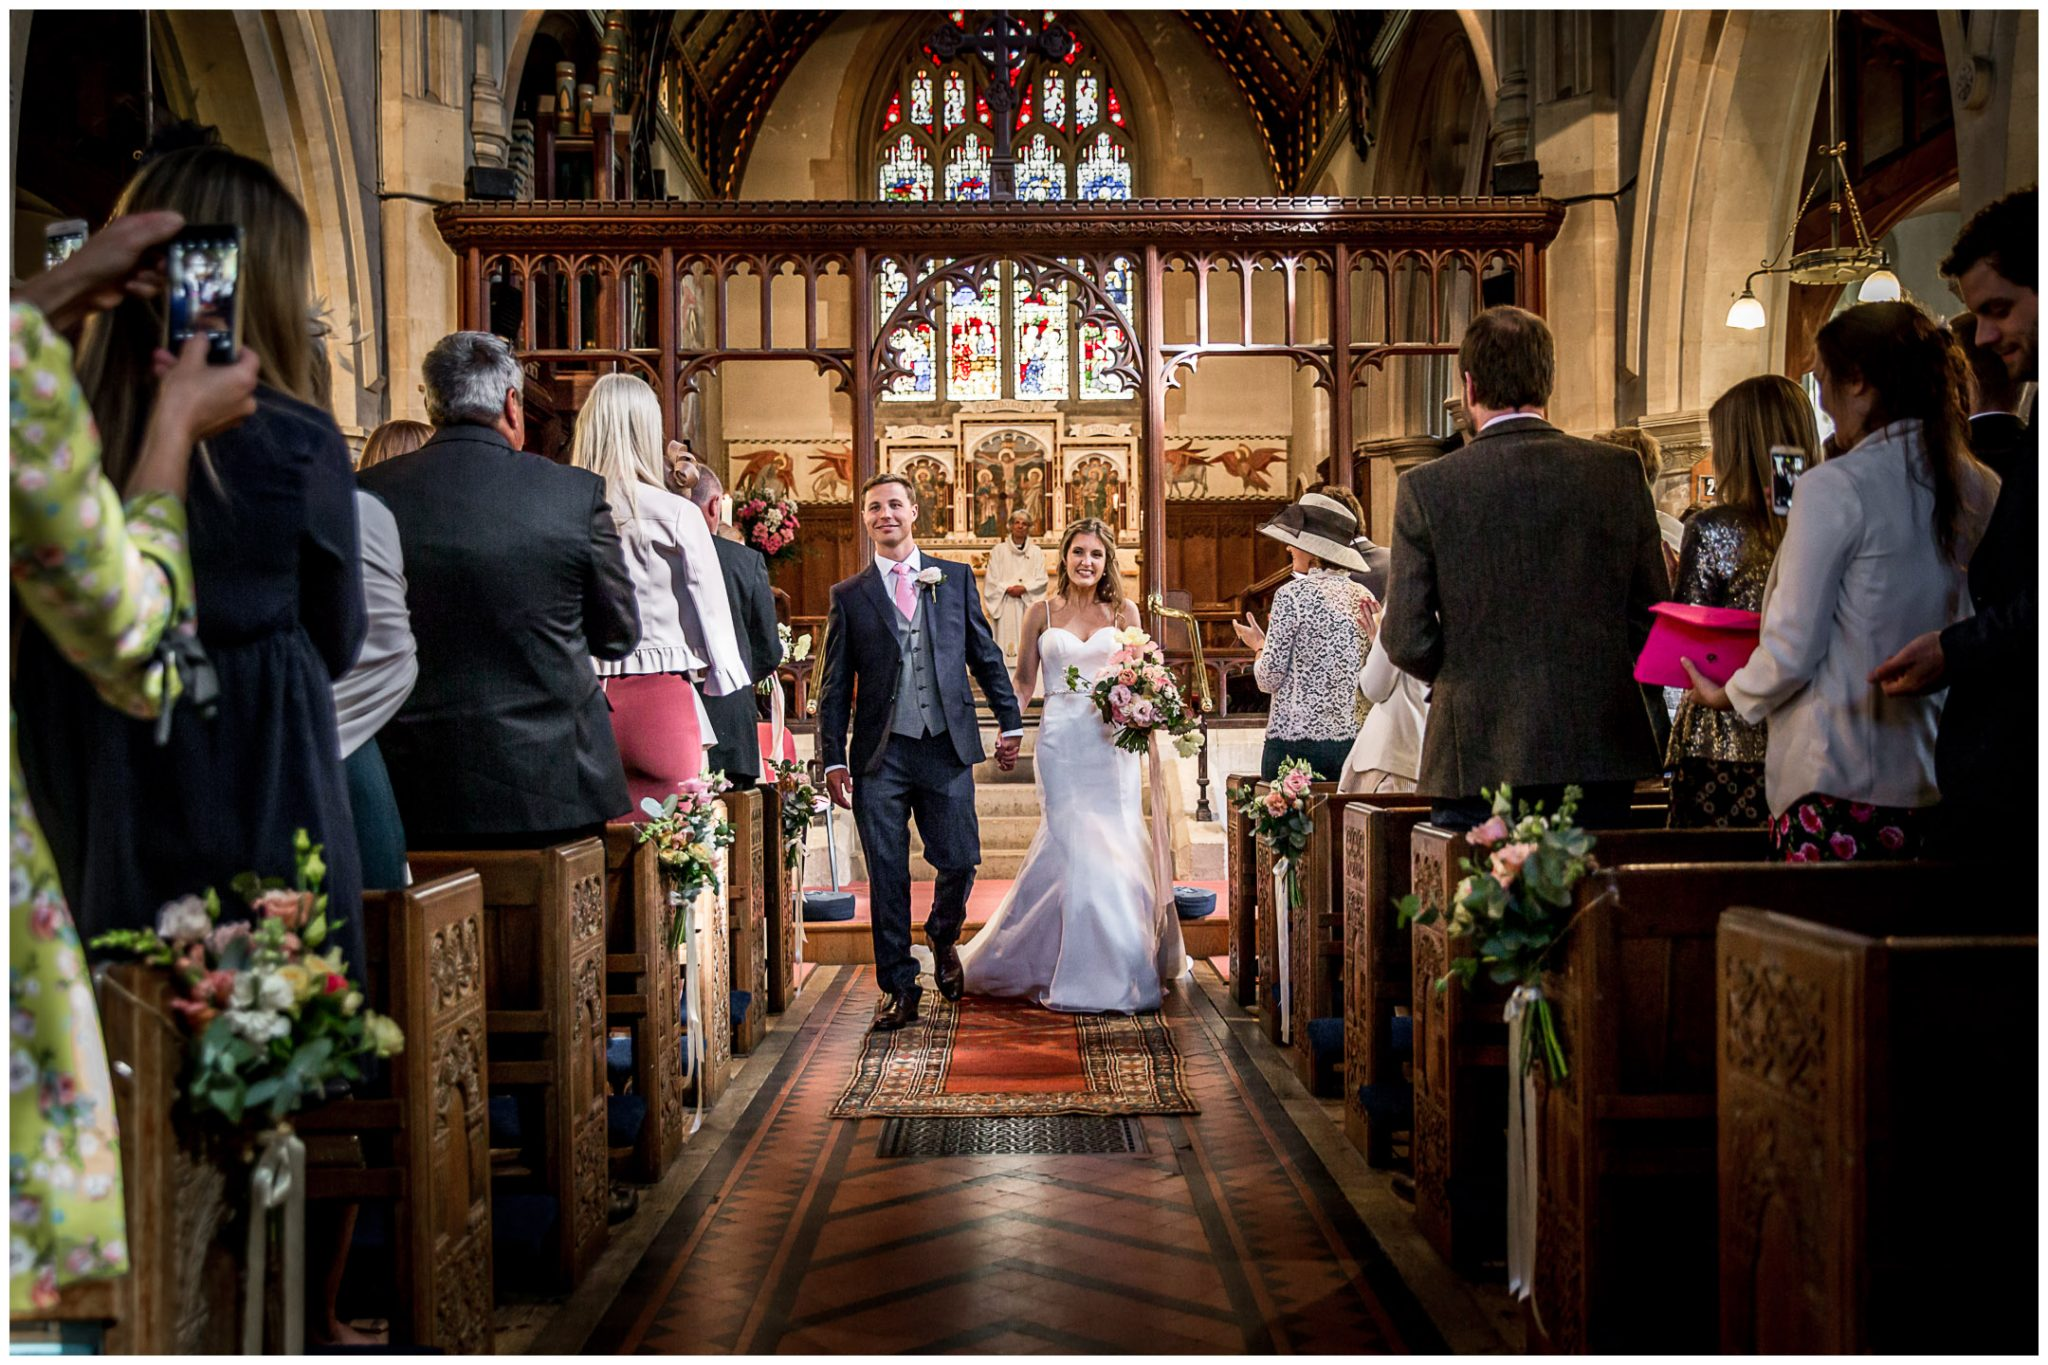 Newly married couple walk down aisle